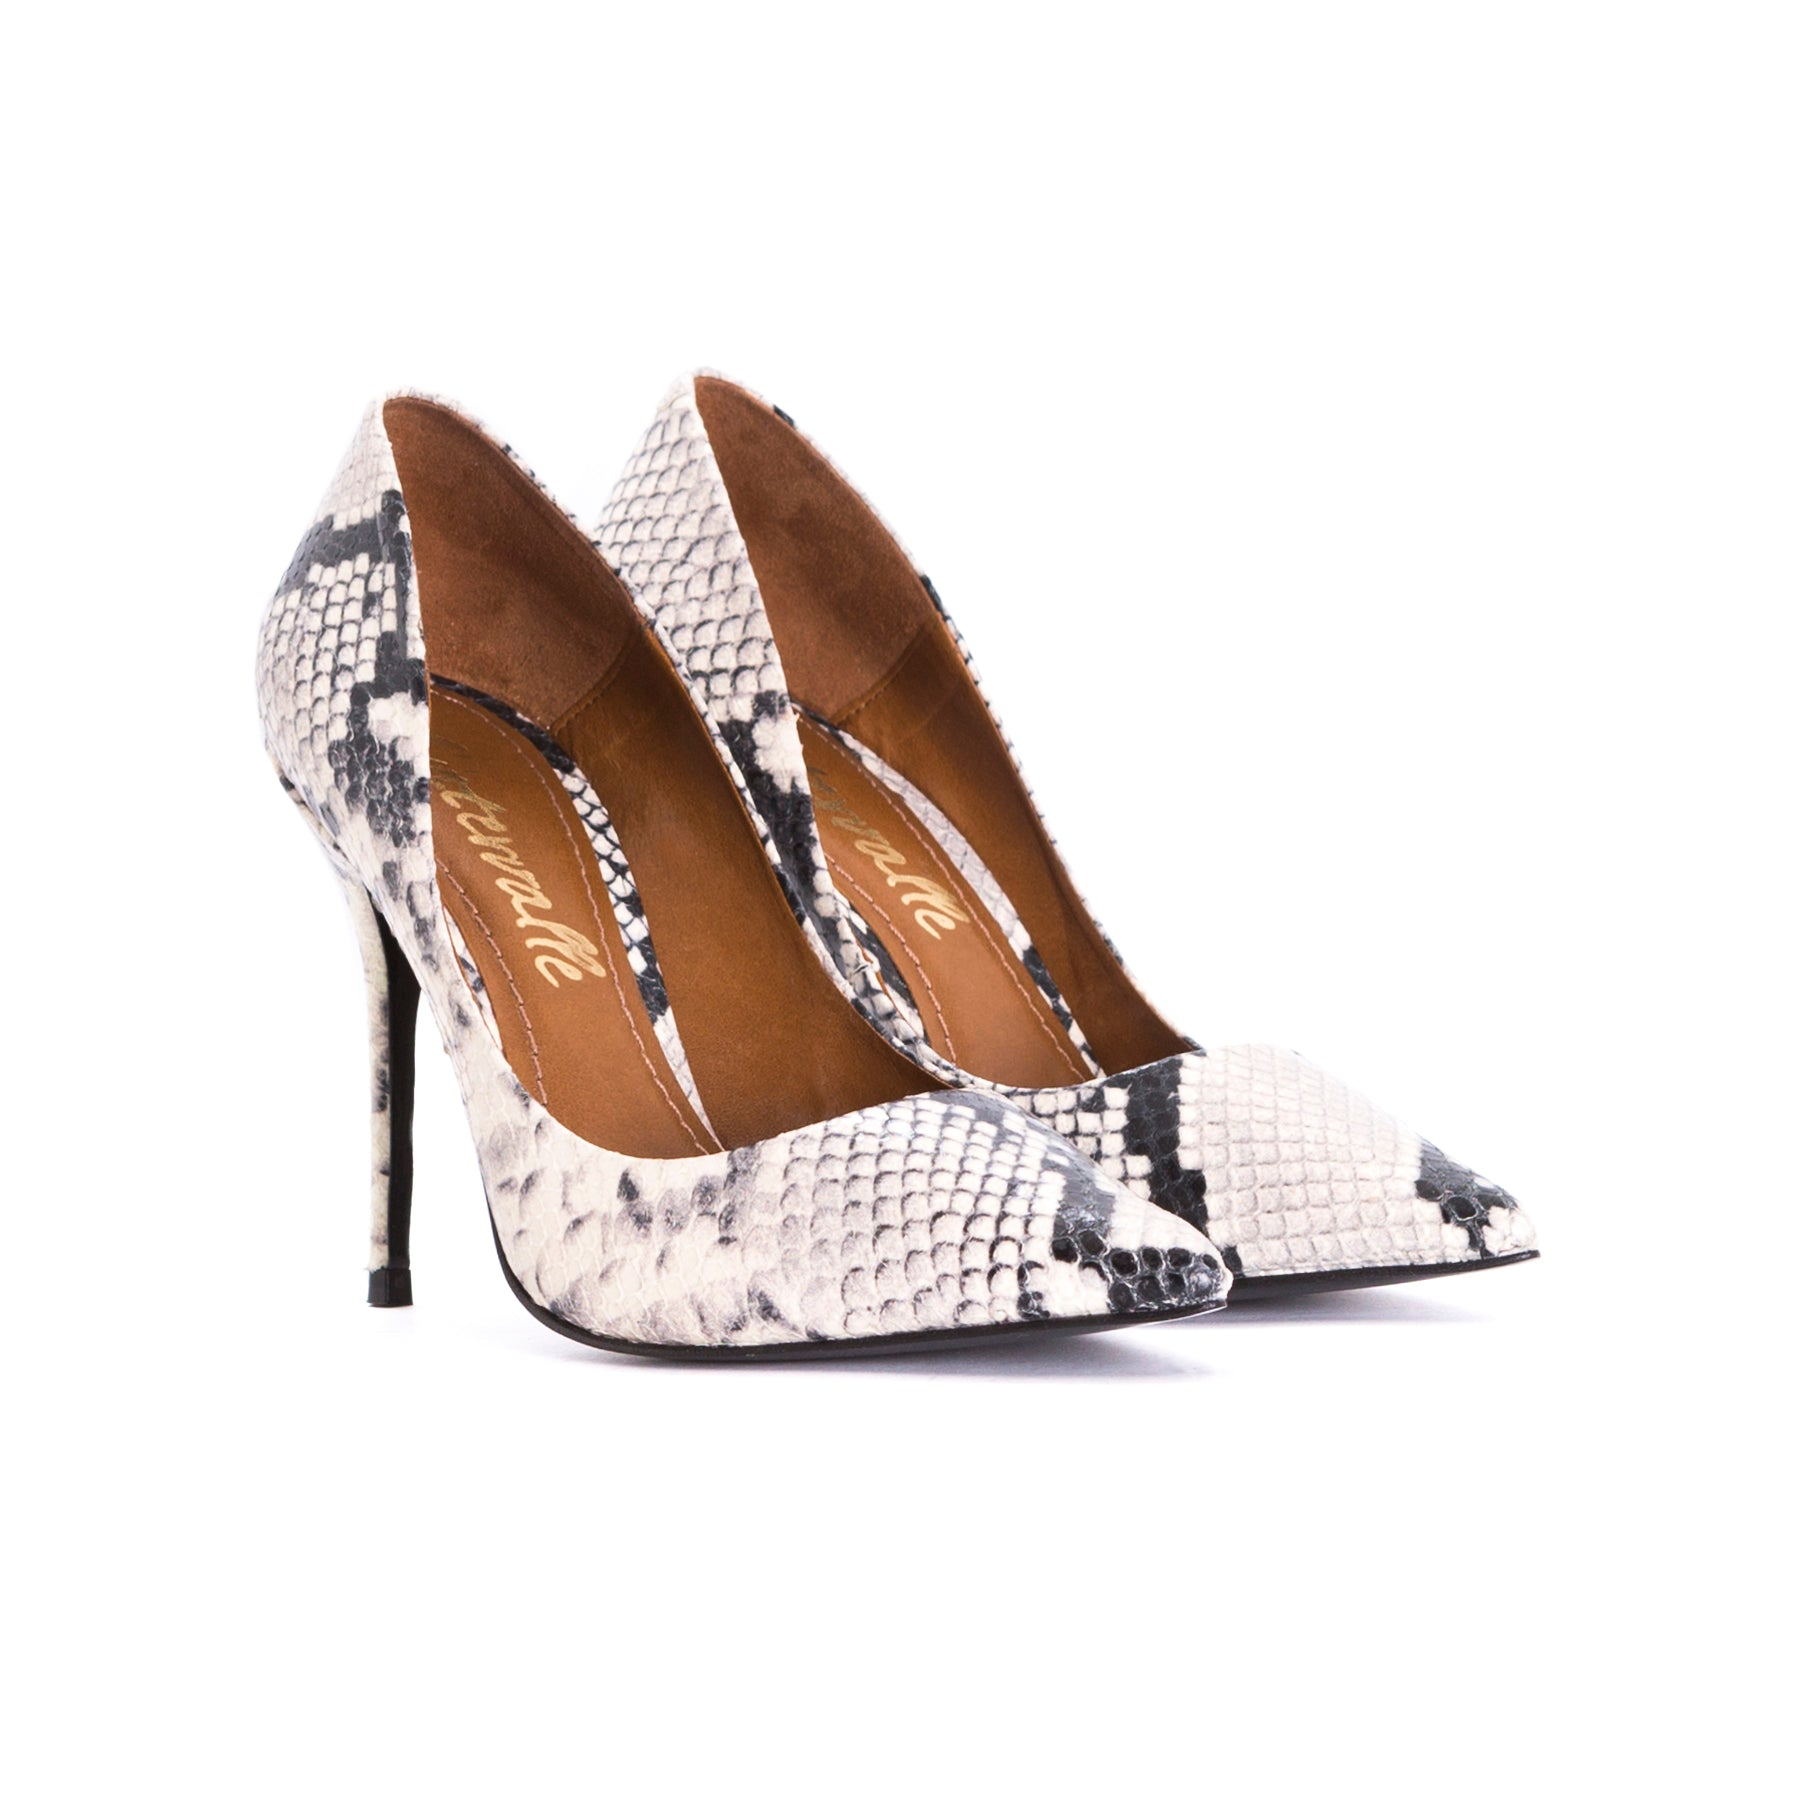 Teeva Natural Snake Leather Pumps